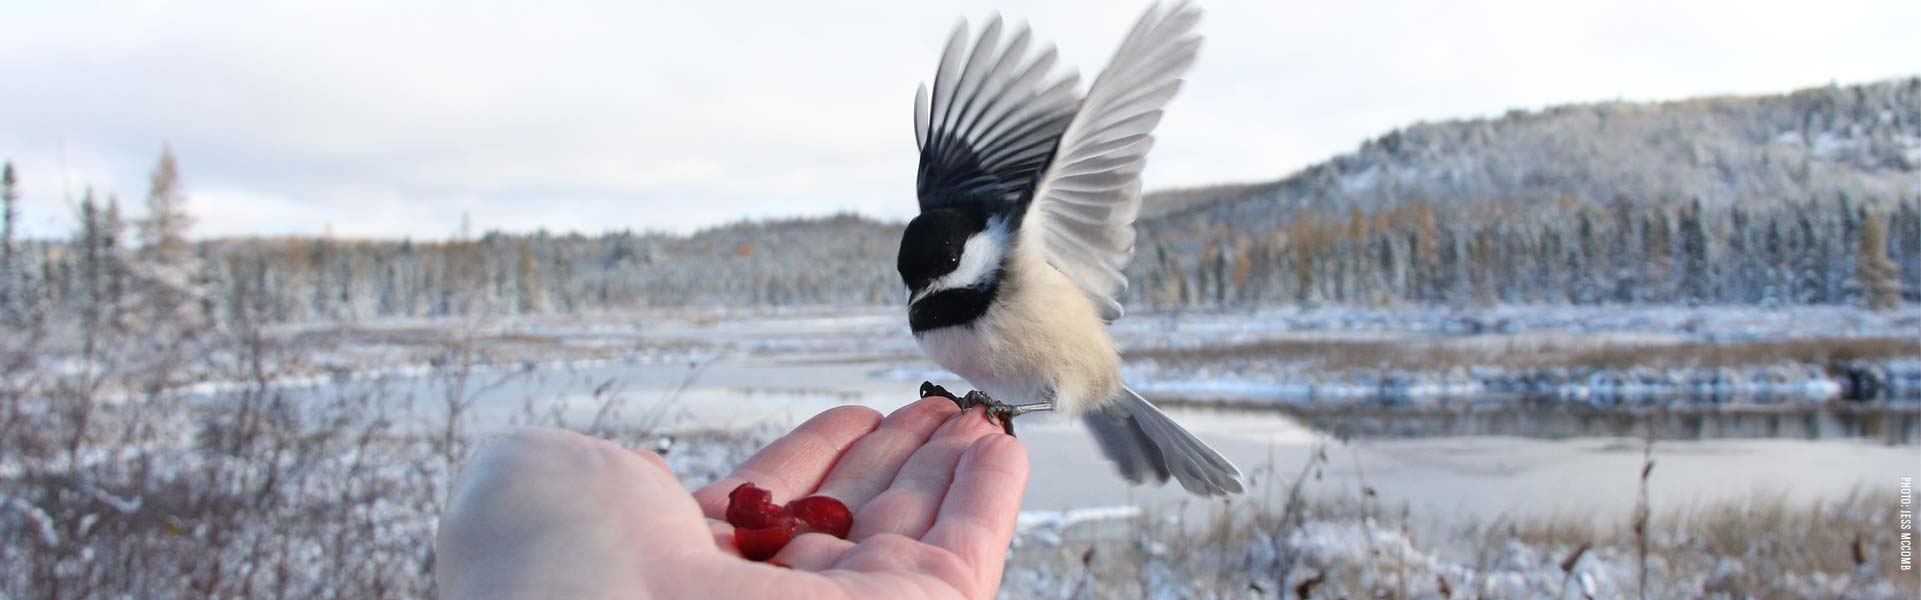 A chickadee landing on someone's hand for a snack, photo by Jess McComb